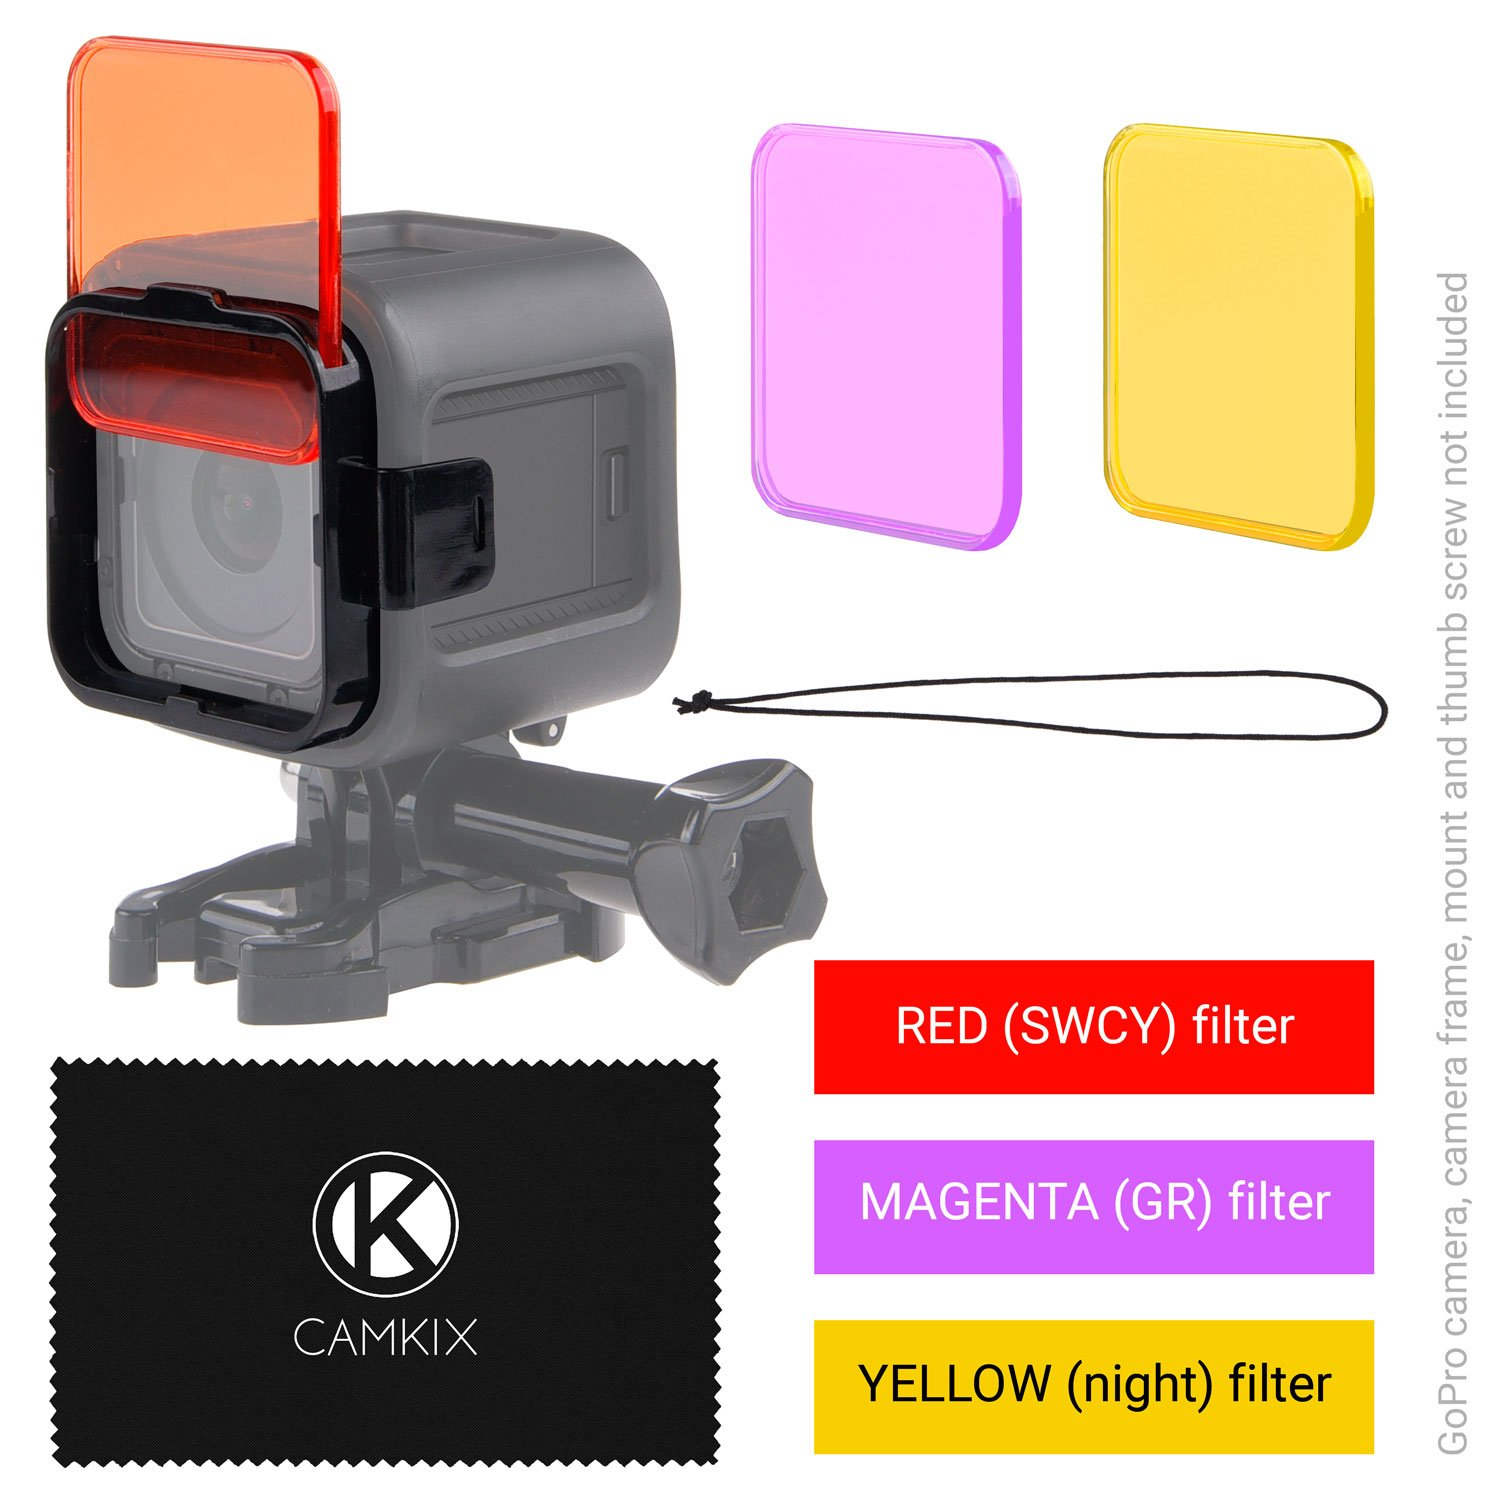 CamKix Diving Lens Filter Kit compatible with GoPro HERO 5 / 4 Session Camera - Enhances Colors for Various Underwater Video and Photography Conditions - Vivid Colors, Improved Contrast, Night Vision D0030-DFK-SES